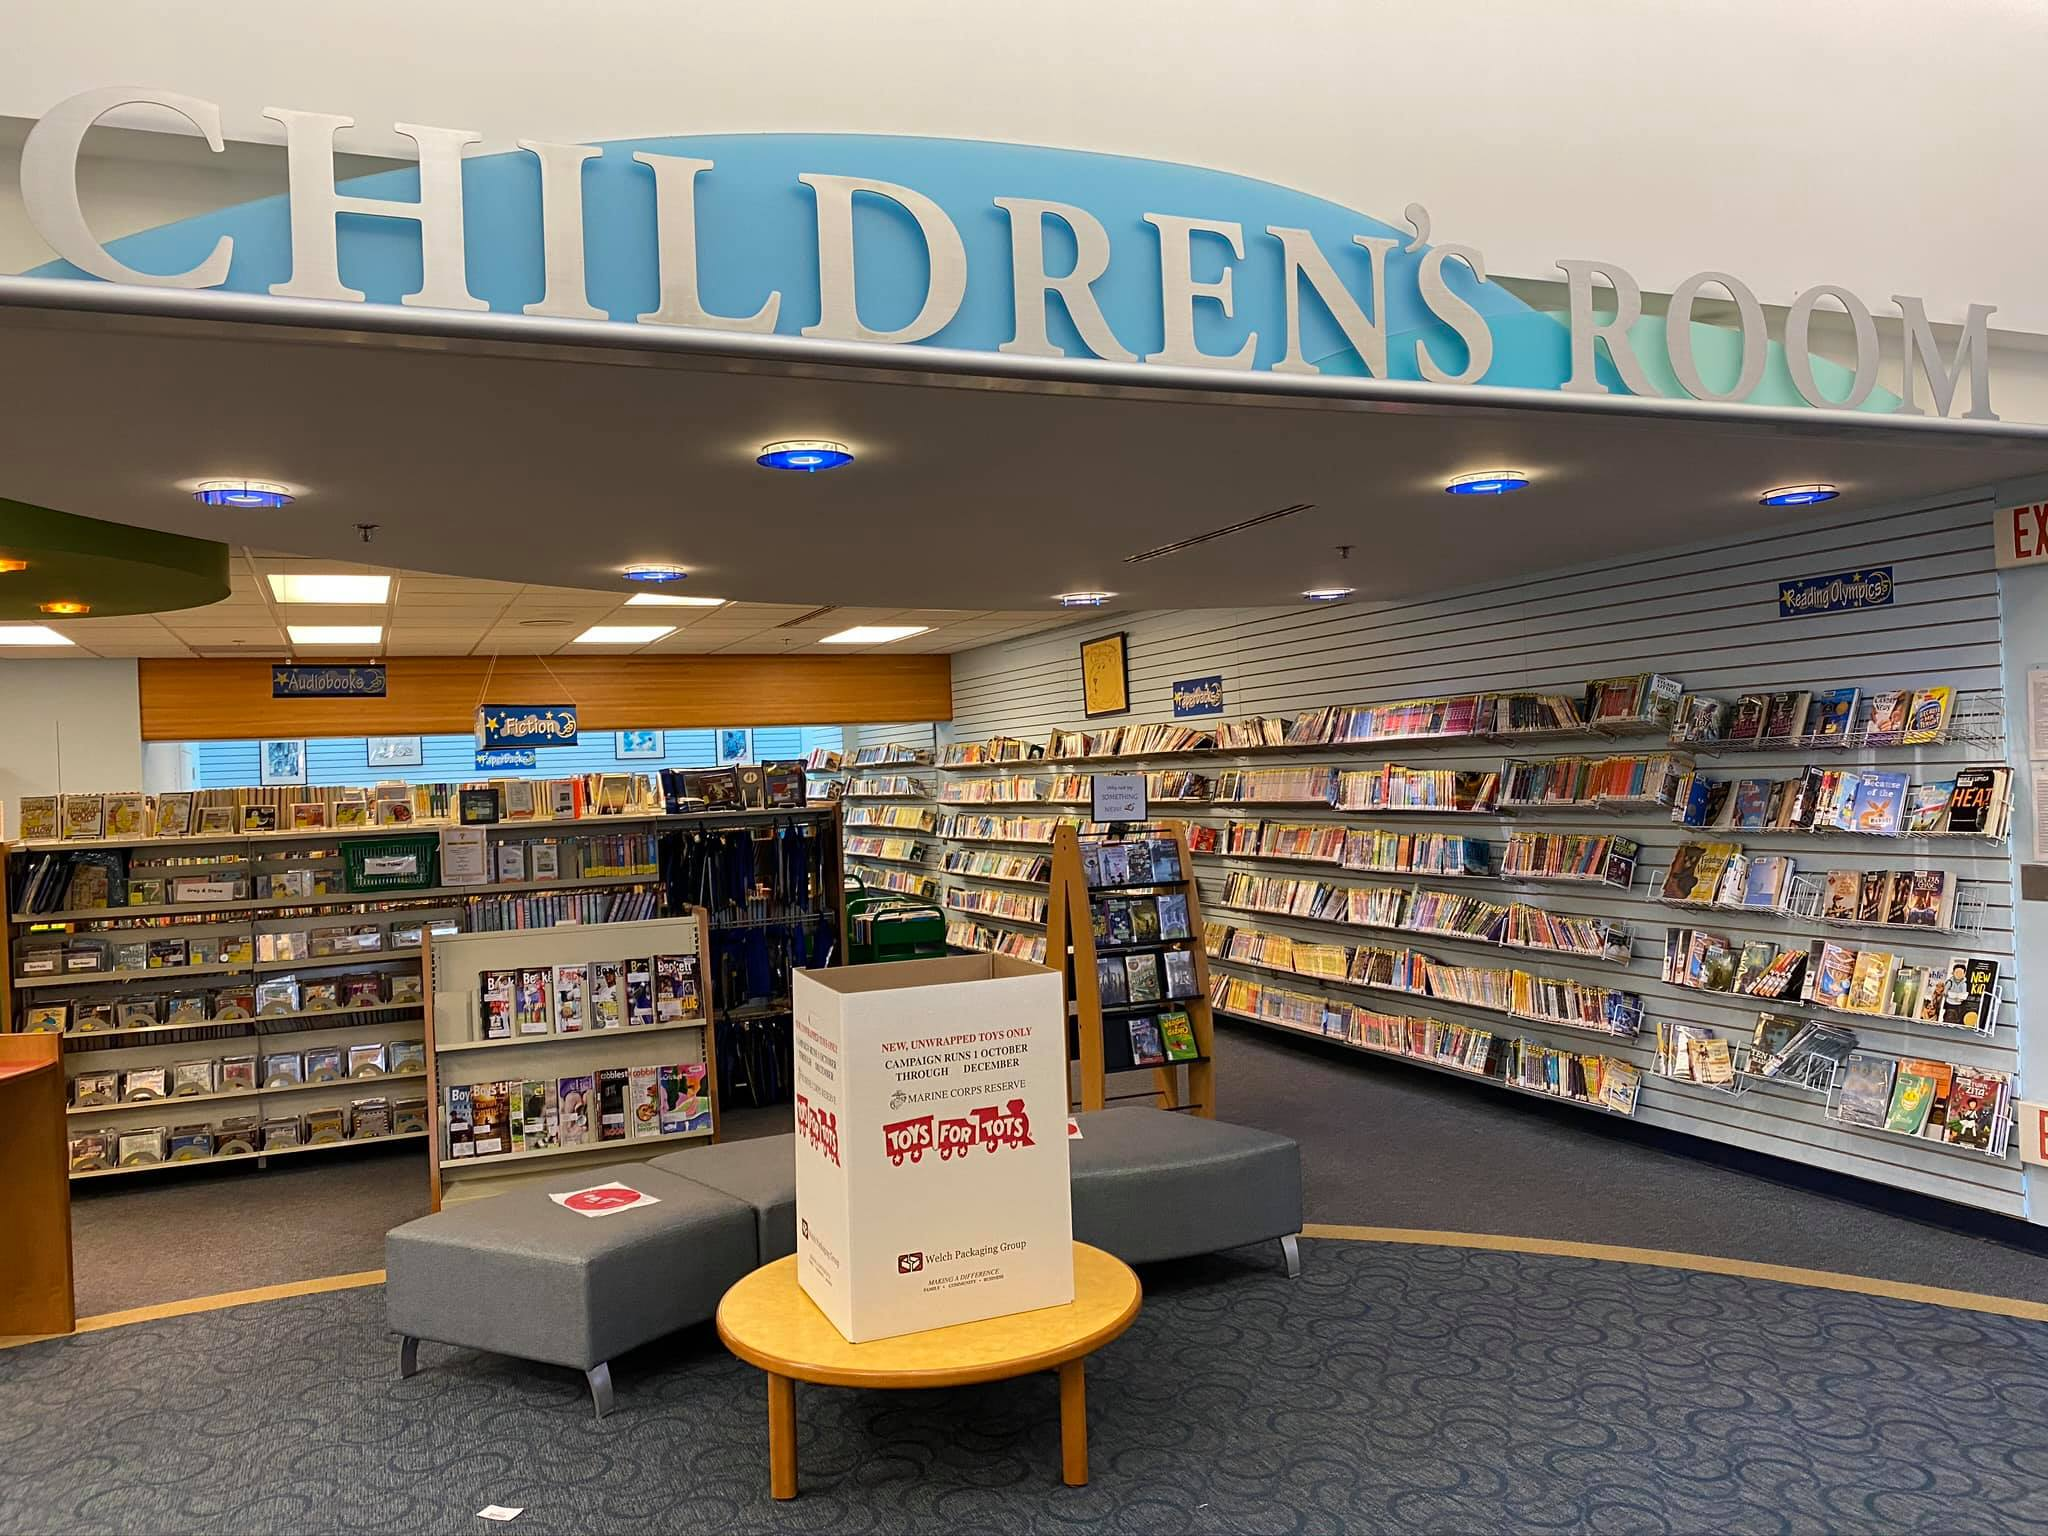 The Children's Room at Chester County Library